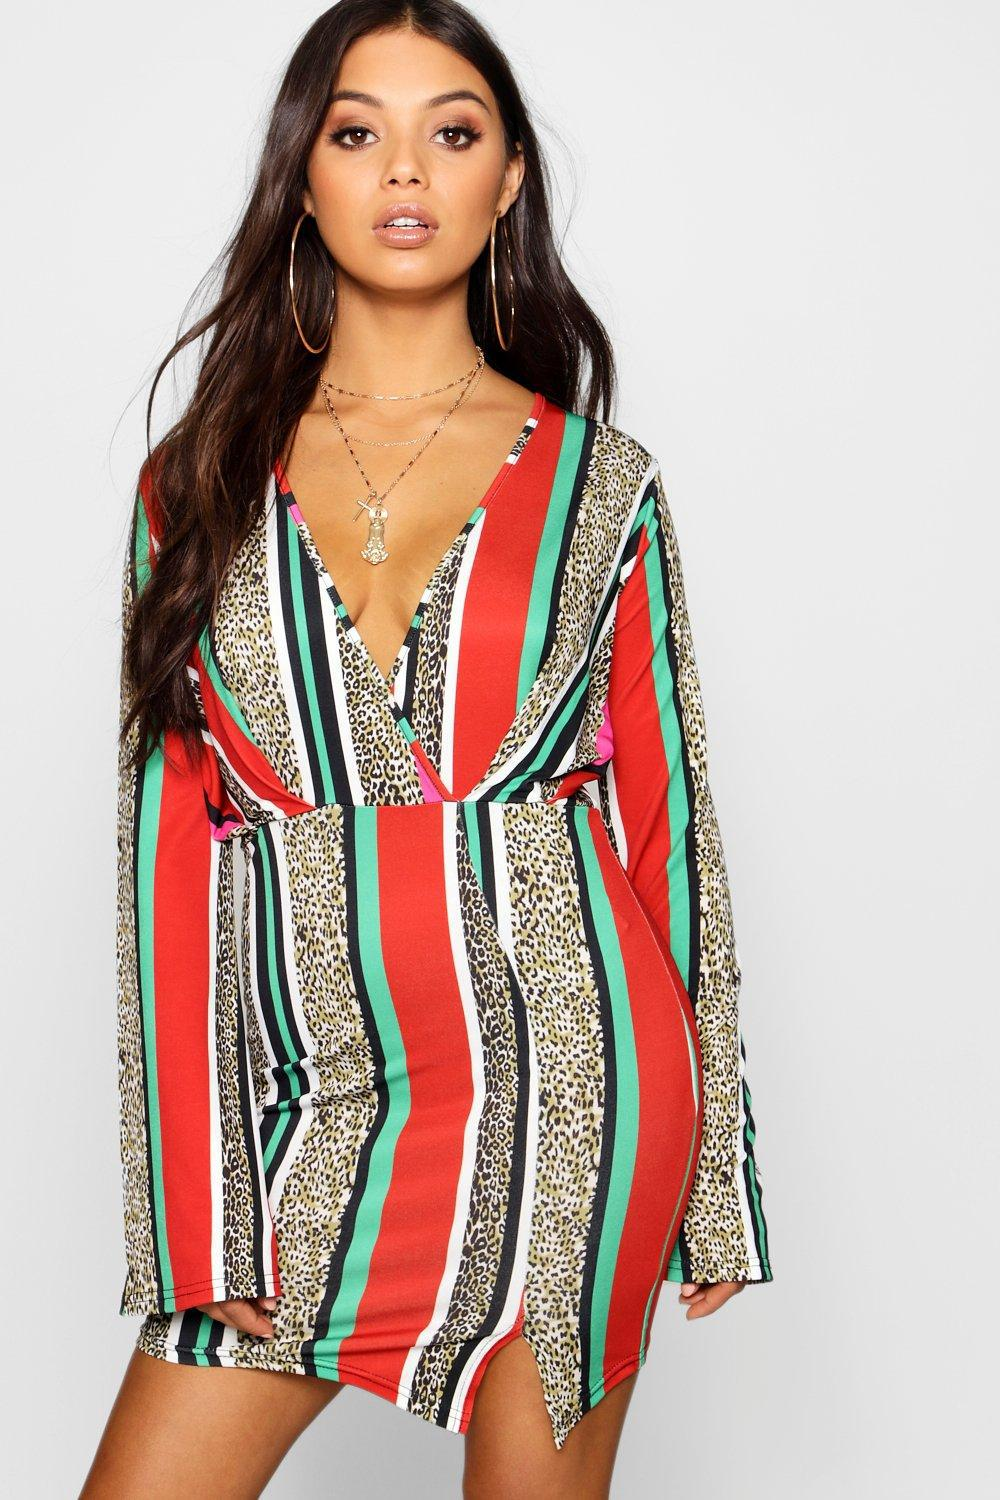 538d55f4816a9 Boohoo Petite Leopard And Stripe Kimono Sleeve Dress in Red - Lyst